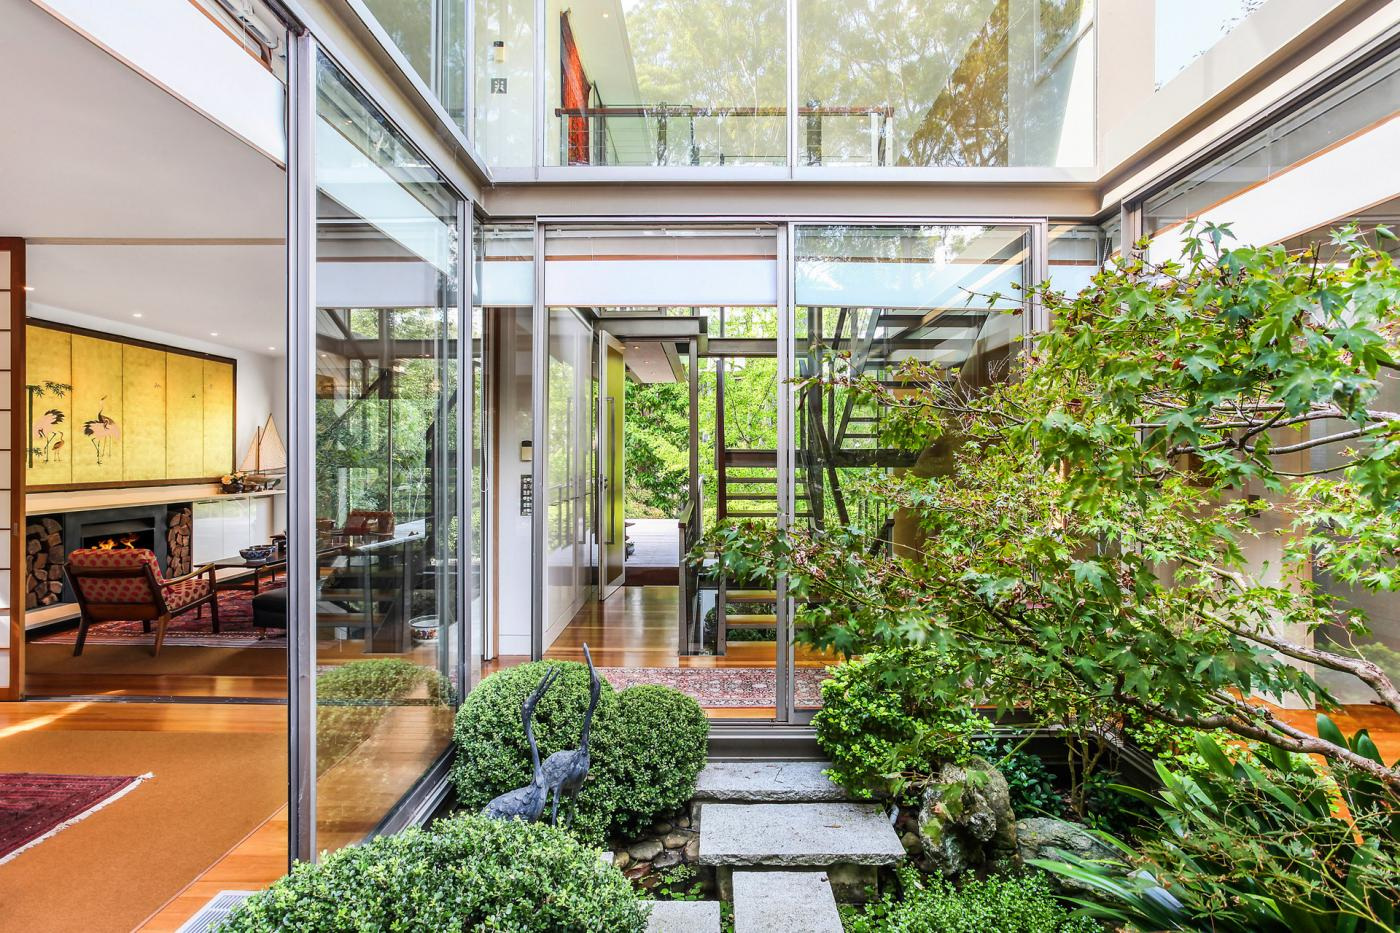 4-hillcrest-street-wahroonga-nsw-2076-real-estate-photo-3-xlarge-12623772